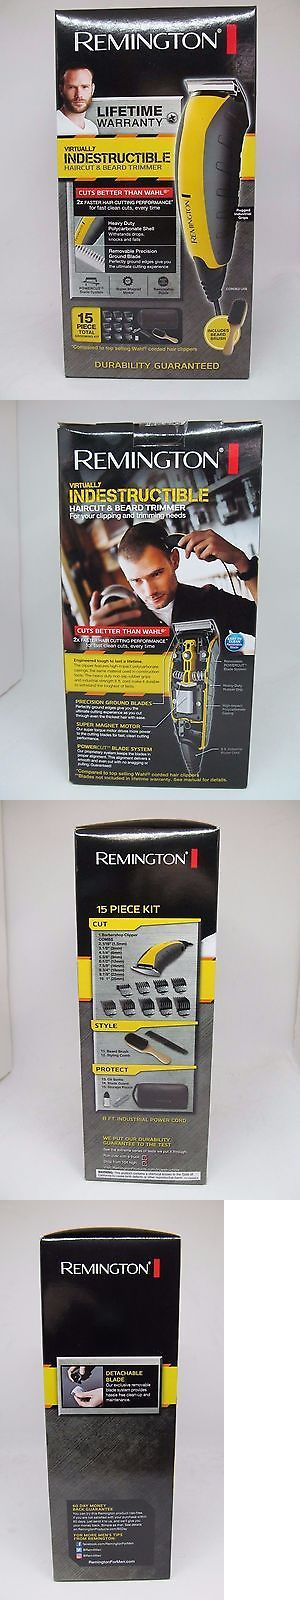 Mens Shavers: Remington Virtually Indestructible Haircut And Beard Trimmer Kit - Hc5855 BUY IT NOW ONLY: $33.5